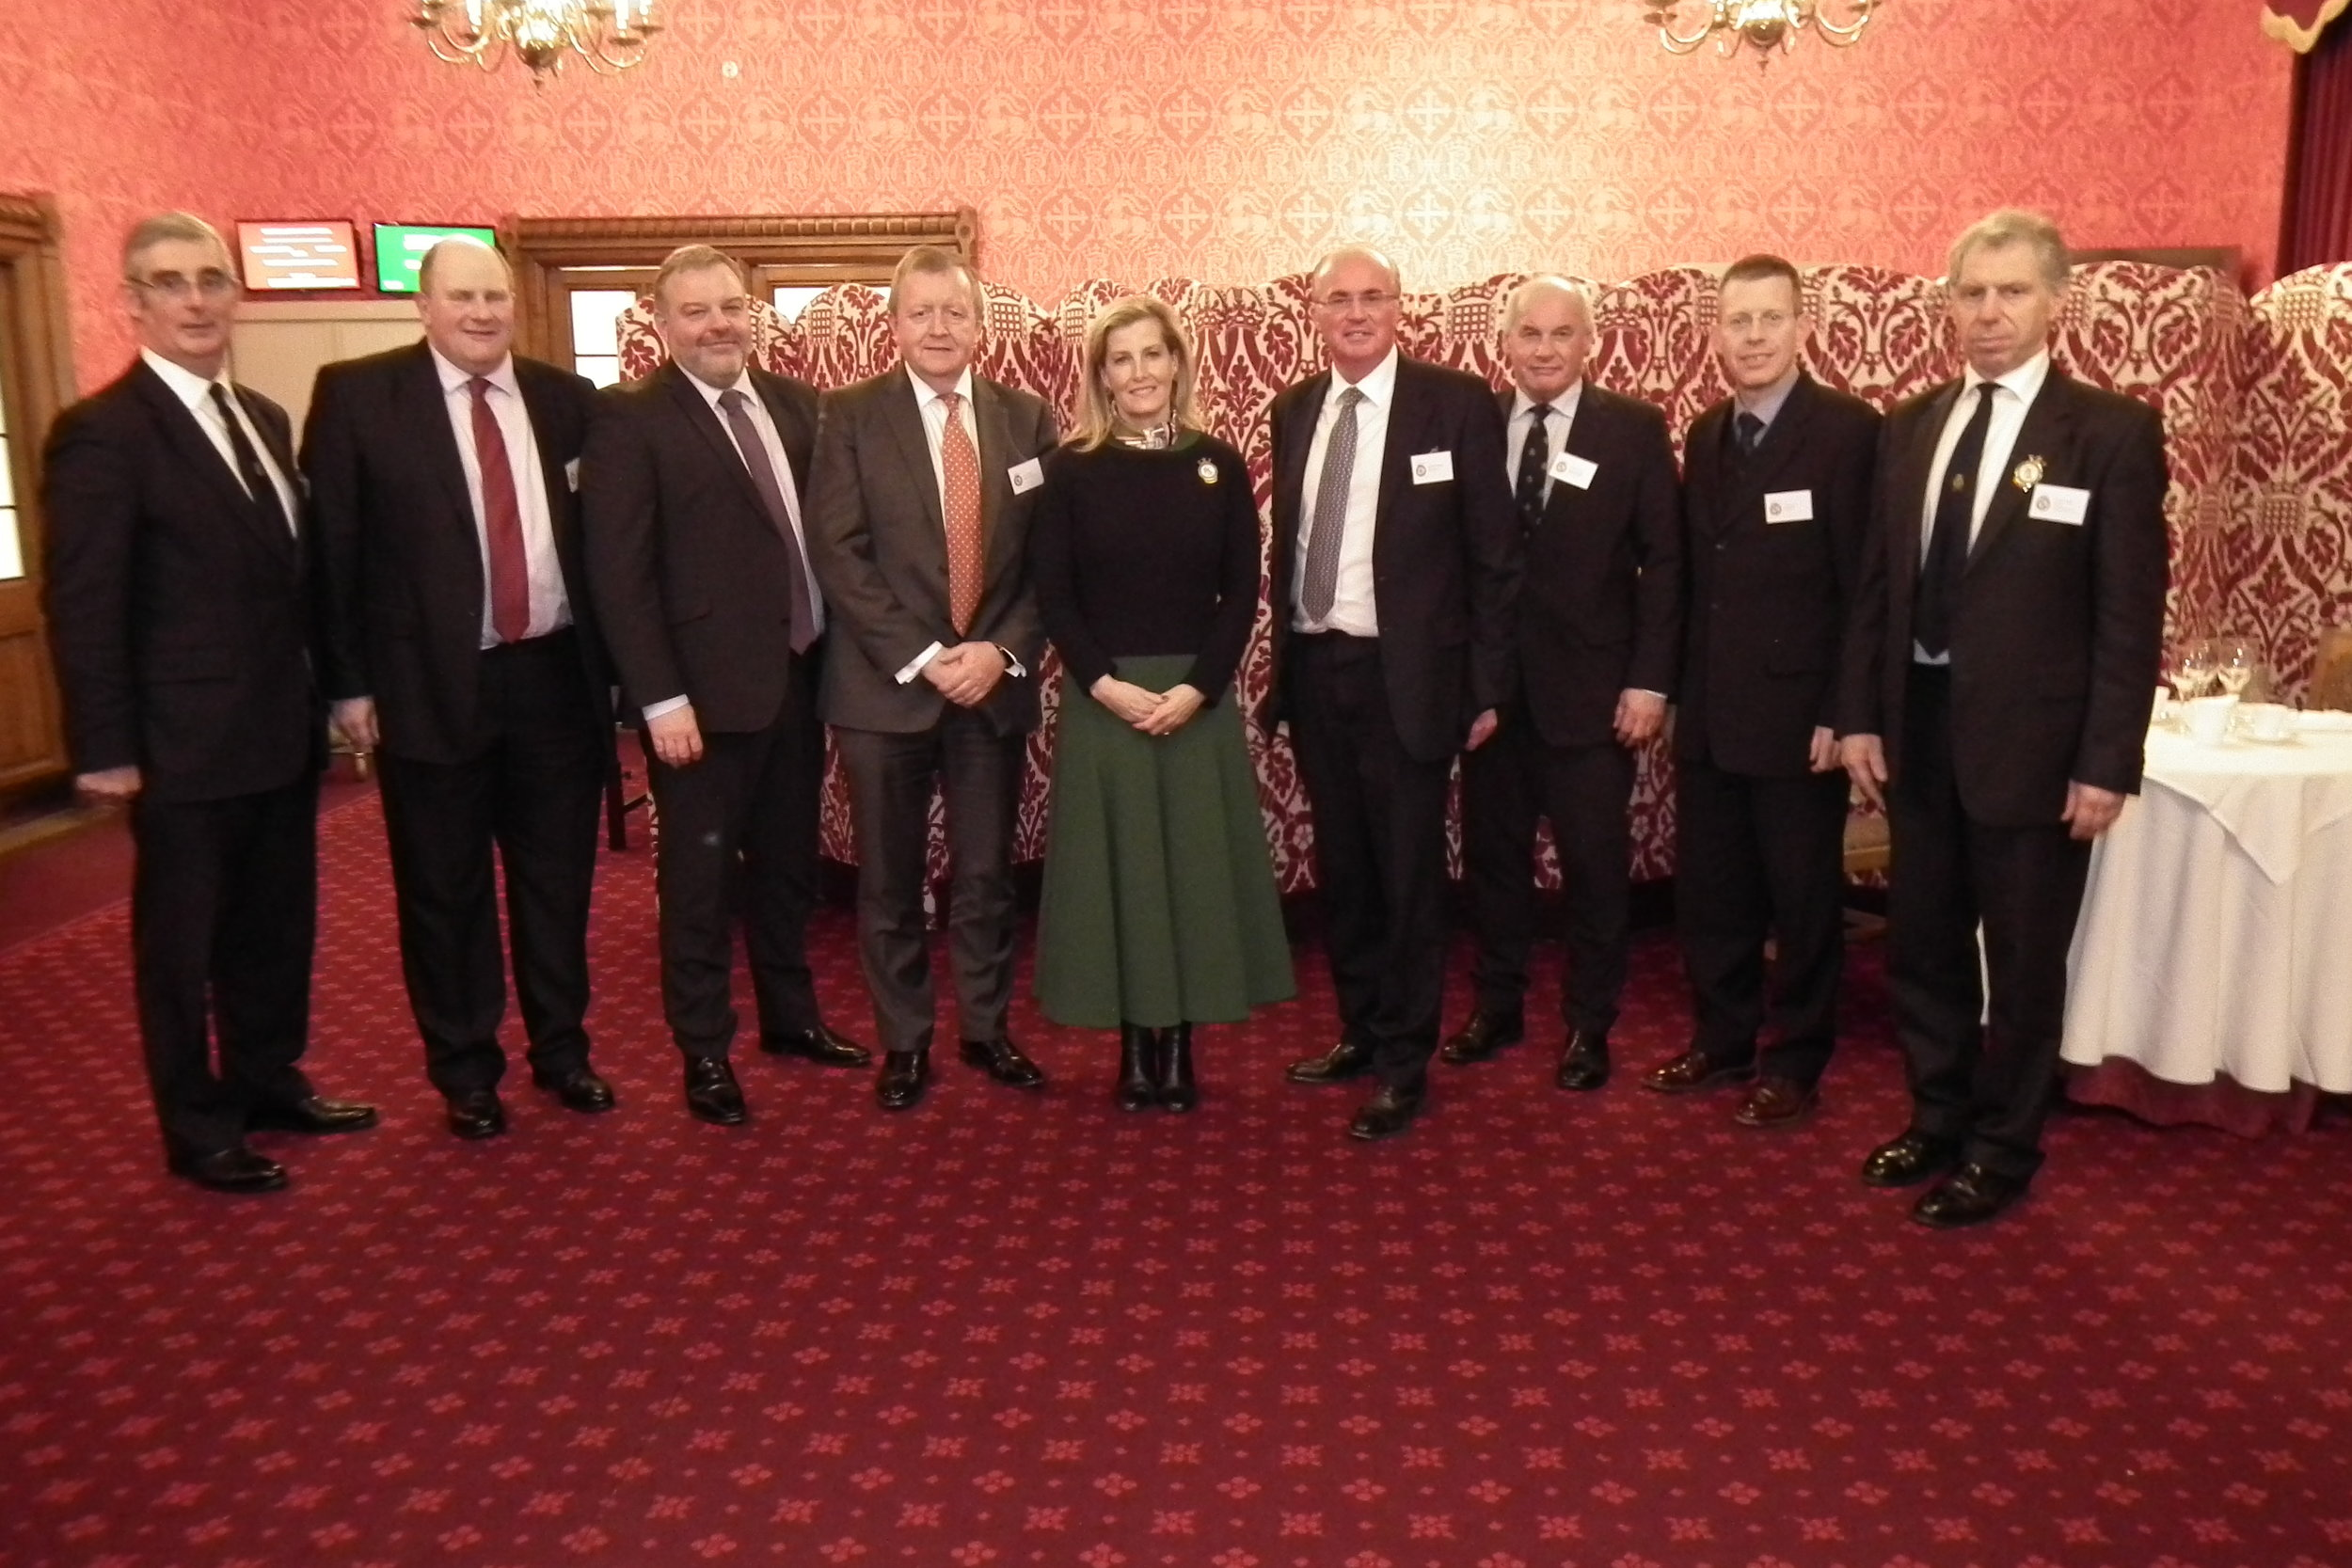 HRH The Countess of Wessex (centre) pictured with (L-R) John Dracup Industry Strategy Director Royal Smithfield Club, Andrew Laughton Chief Executive National Beef Association, Prys Morgan Procurement Director Kepak-St Merryn, Tom Kirwan Chief Executive ABP, Robbie Galloway CEO Scotbeef, David Gunner Chief Executive Dovecote Park, Mark Allan Dawn/Dunbia, William Bedell Chairman Royal Smithfield Club